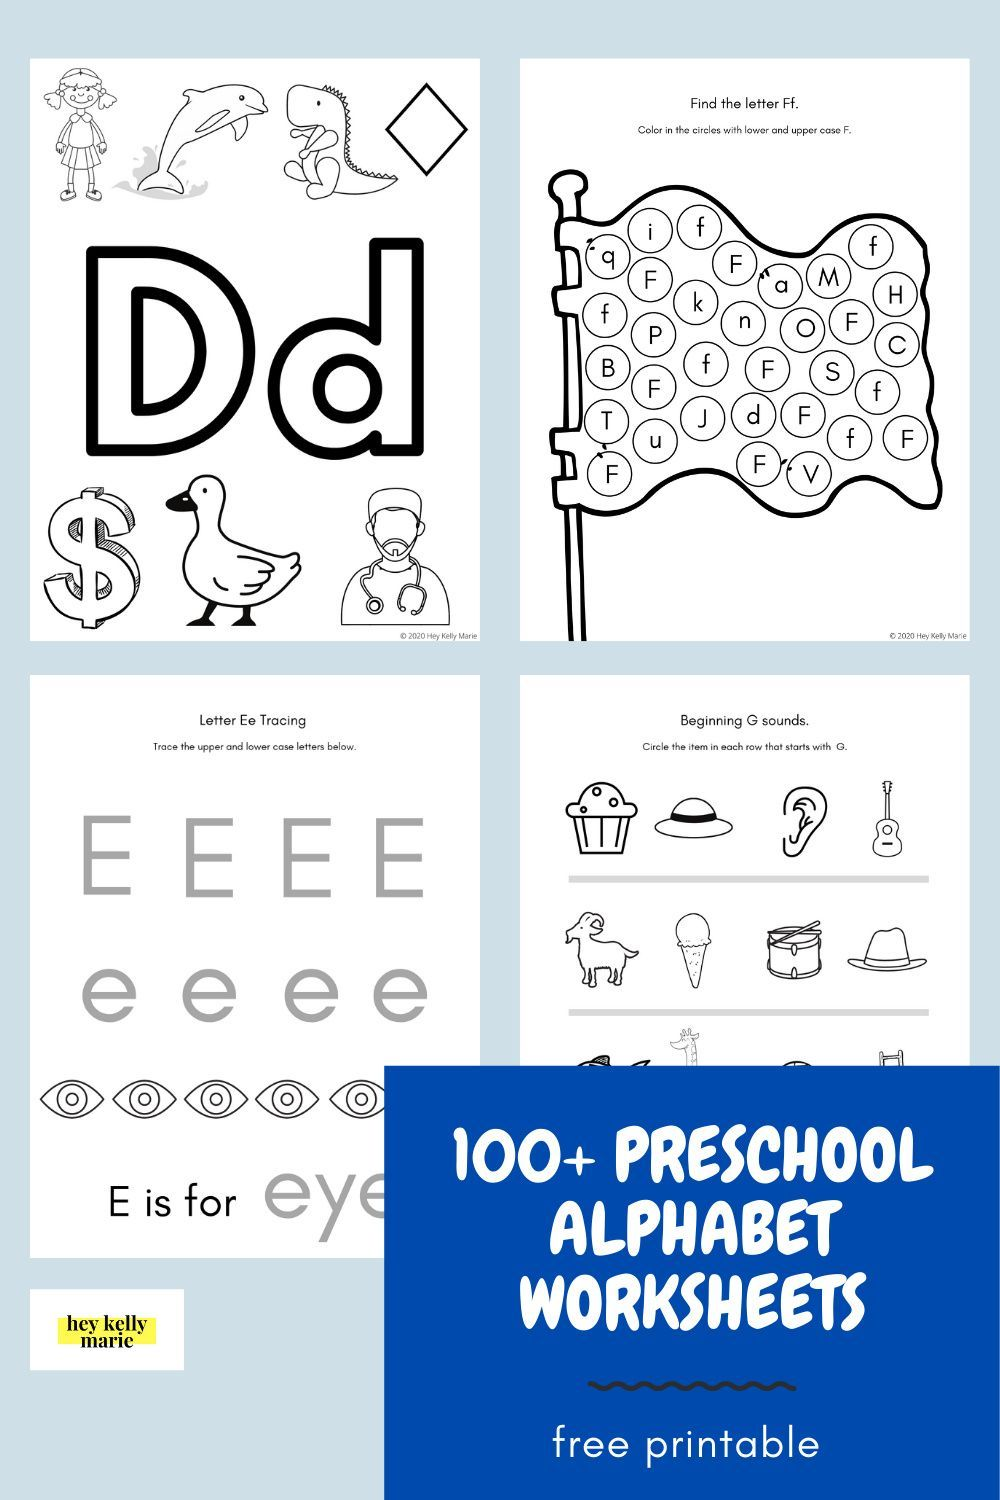 100 Free Alphabet Worksheets For Letter Recognition And Sounds Hey Kelly Mar In 2020 Alphabet Worksheets Alphabet Worksheets Preschool Printable Alphabet Worksheets